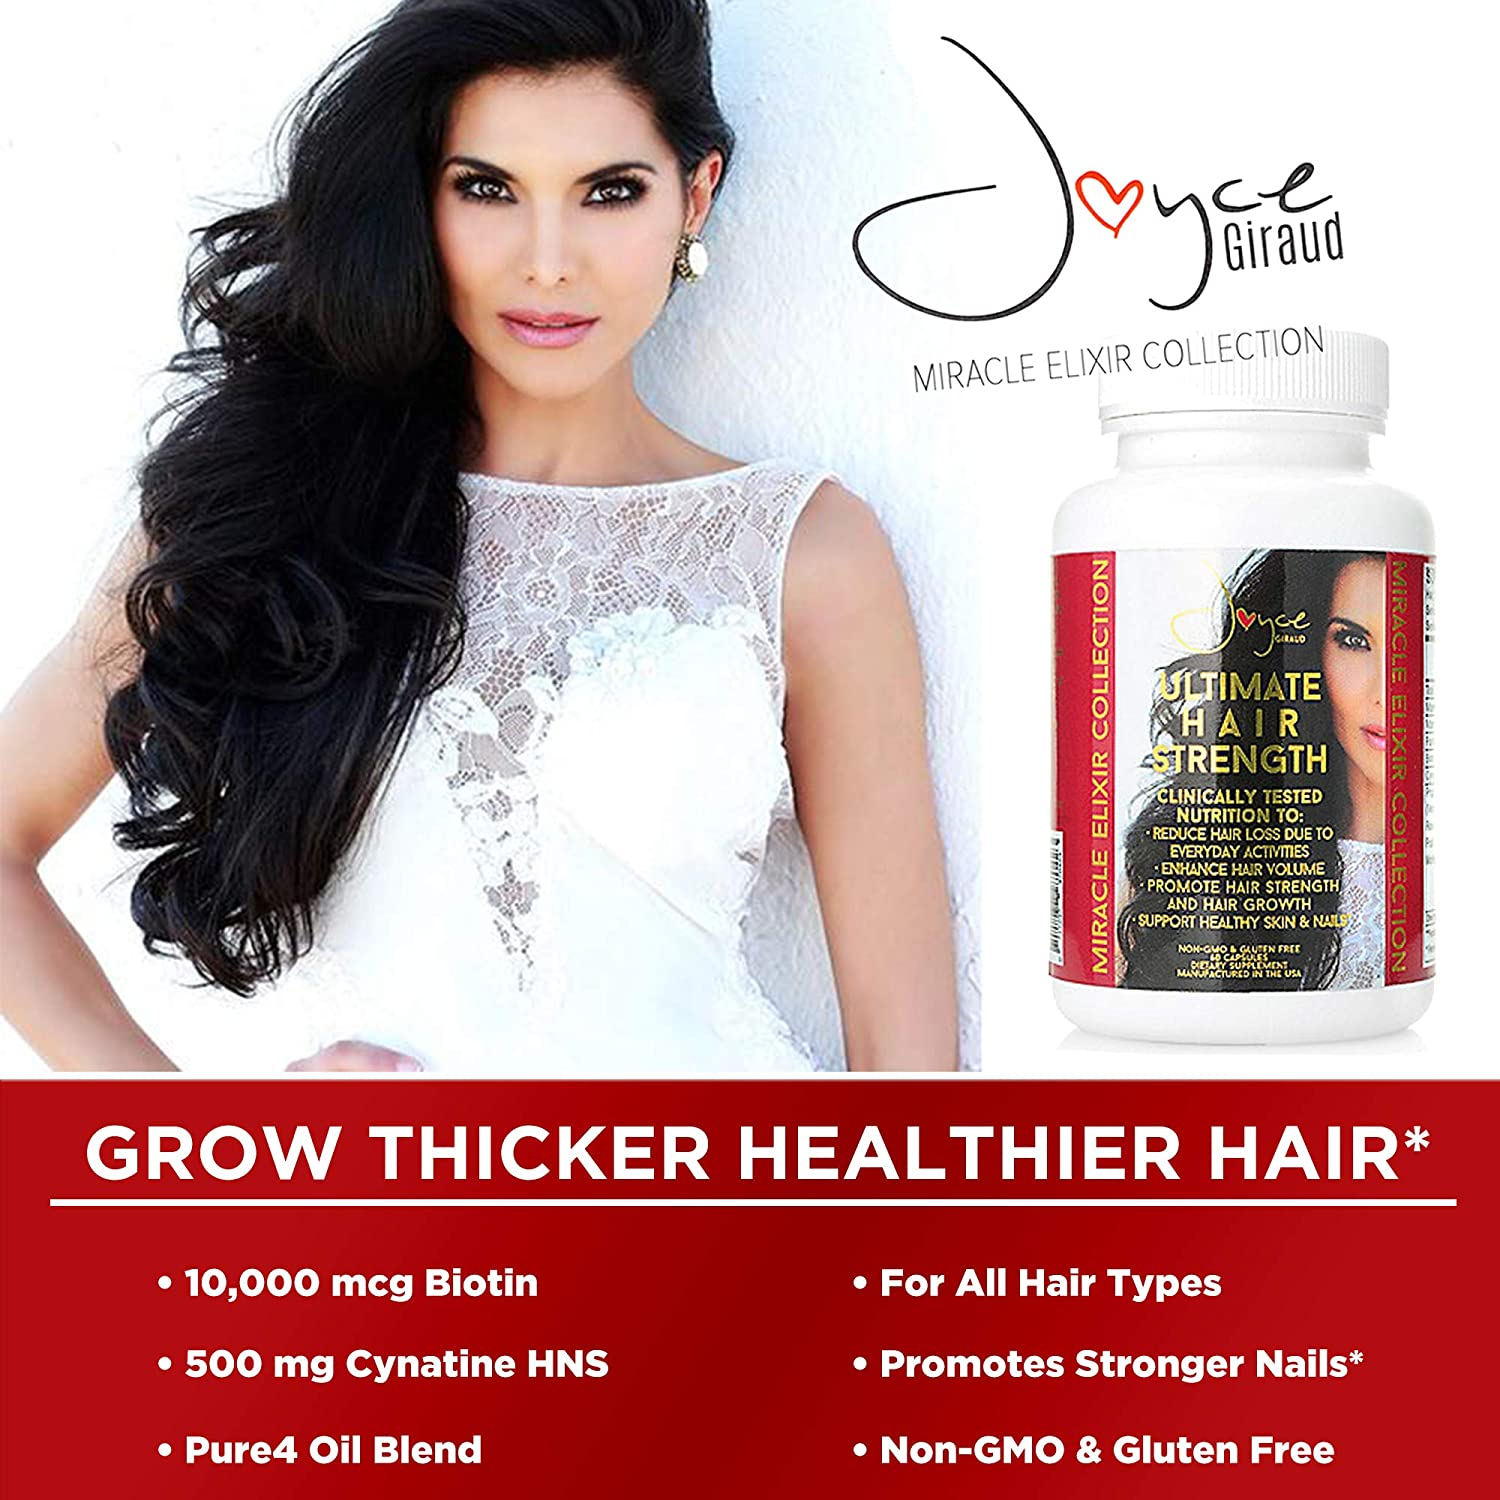 Joyce Giraud Ultimate Hair Strength Supplement